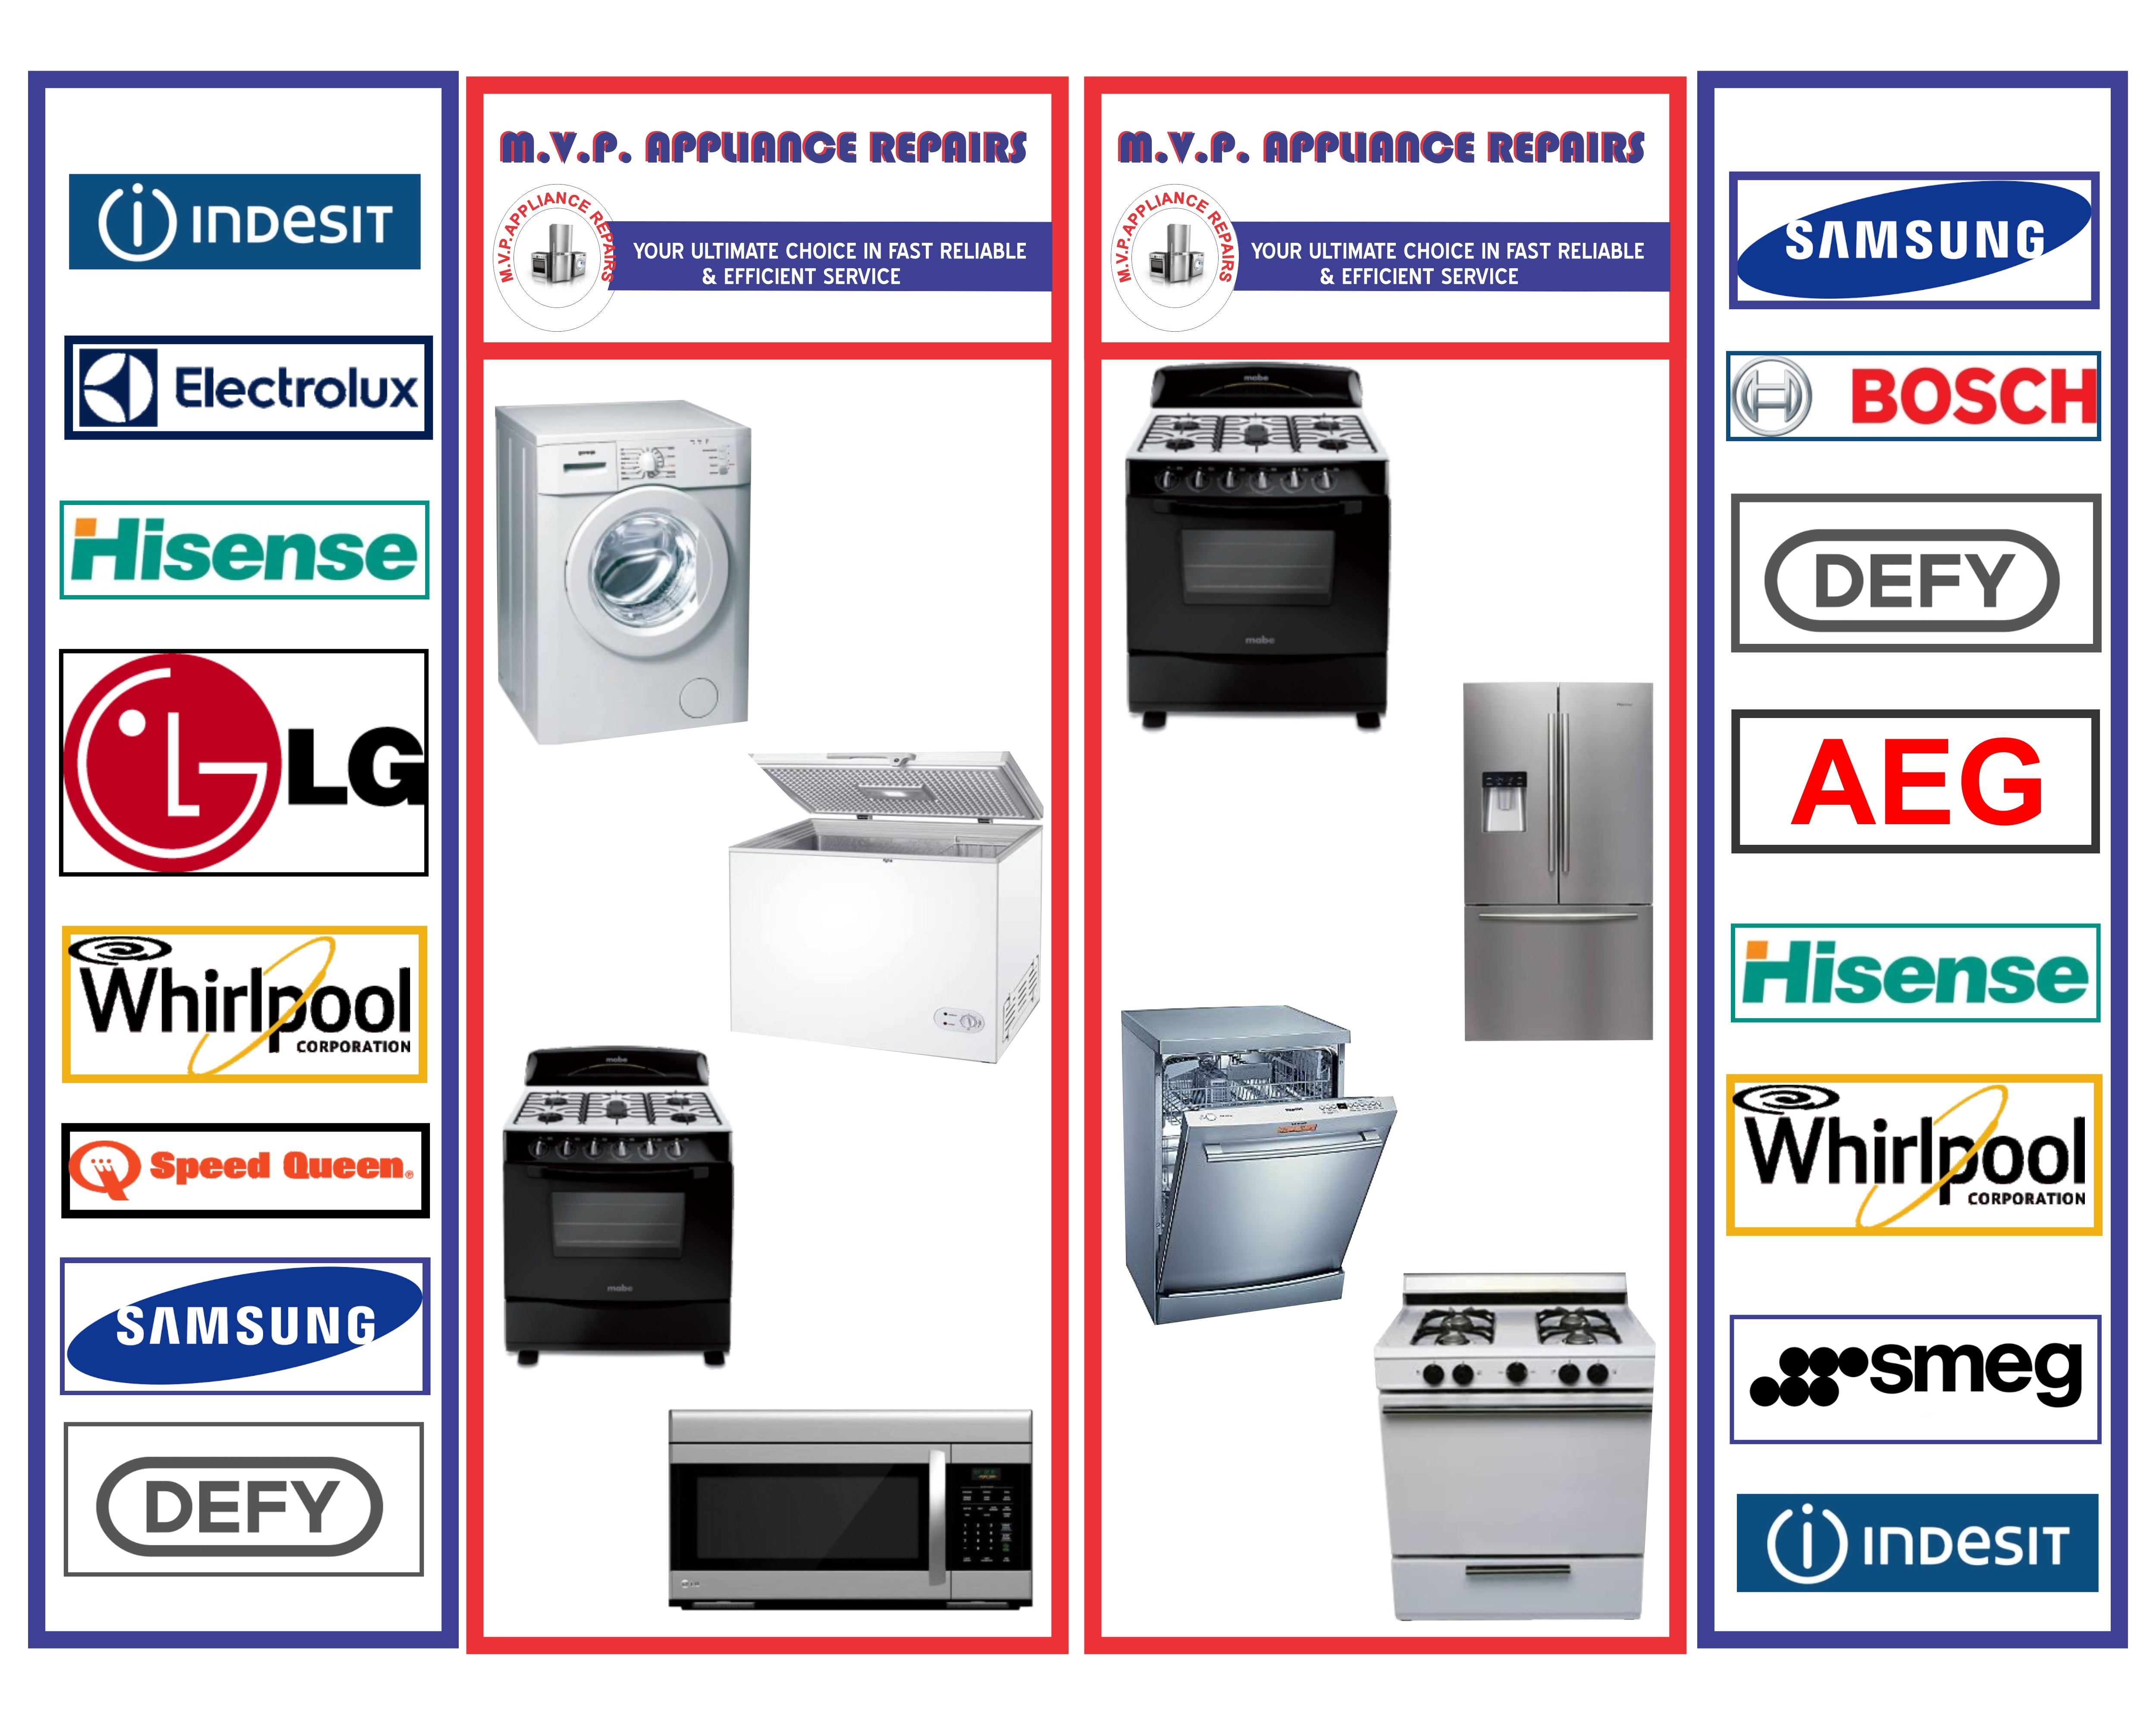 Services 1 Mvp Appliance Repairs